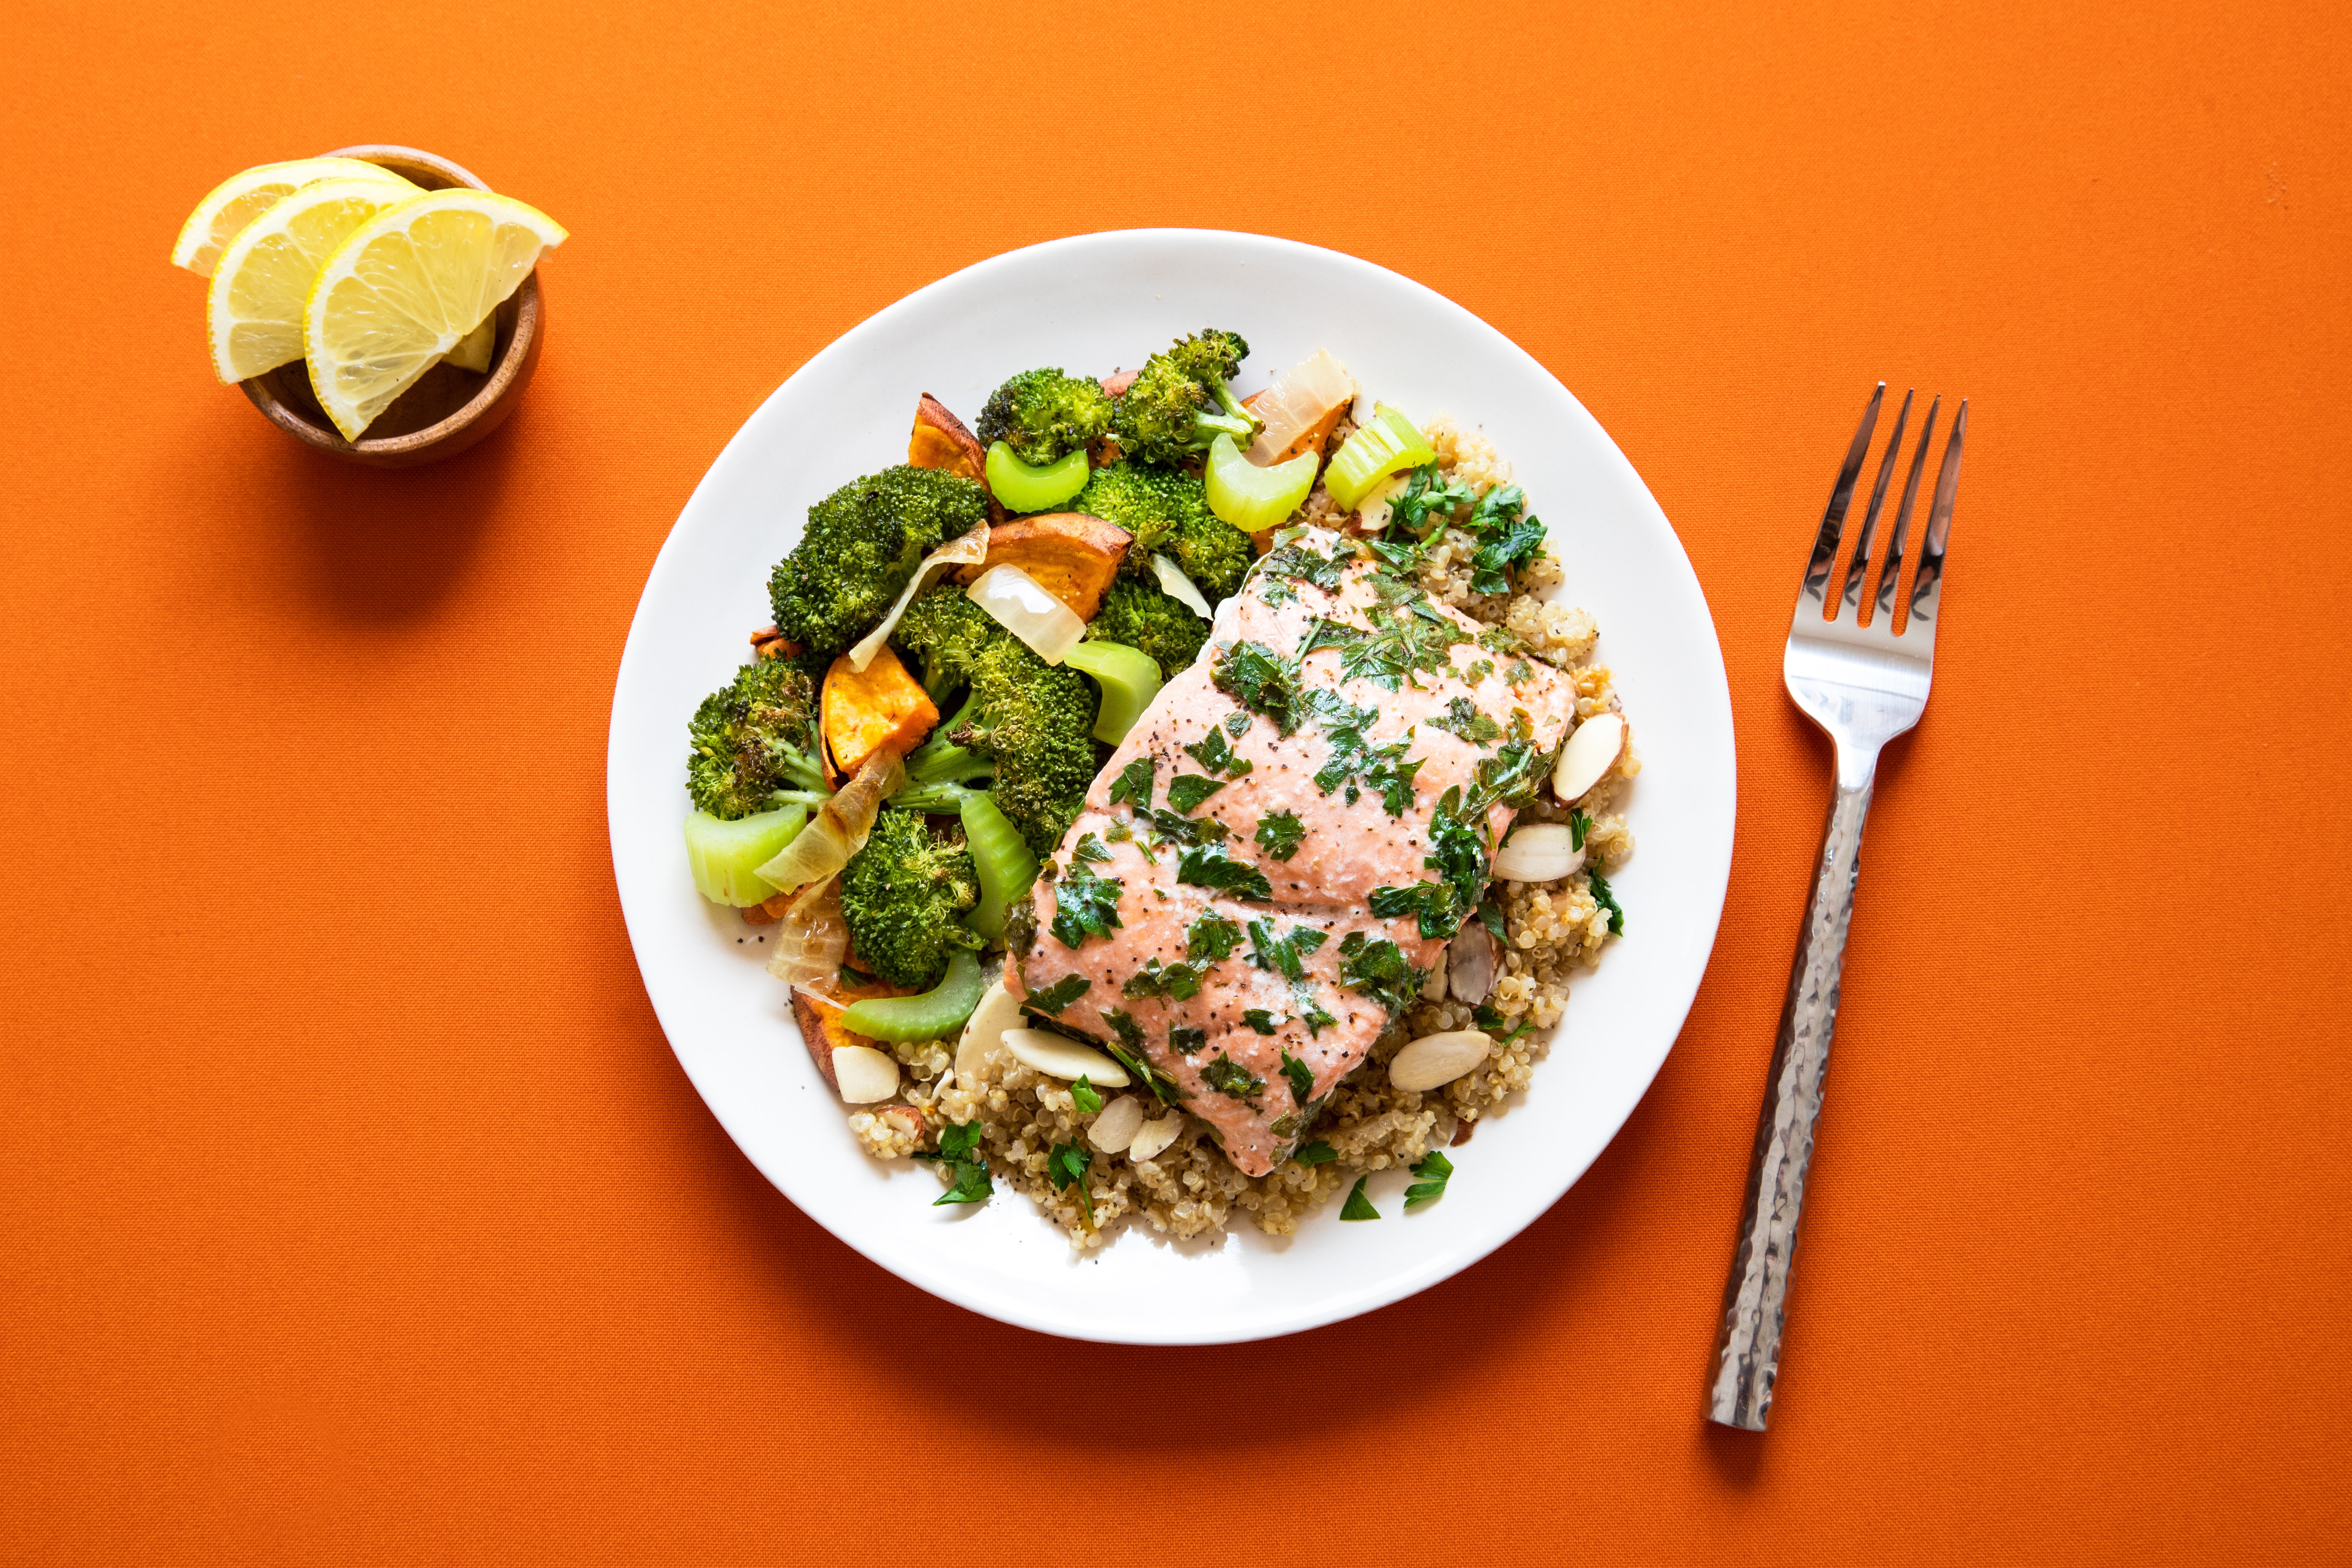 broccoli with meat on plate